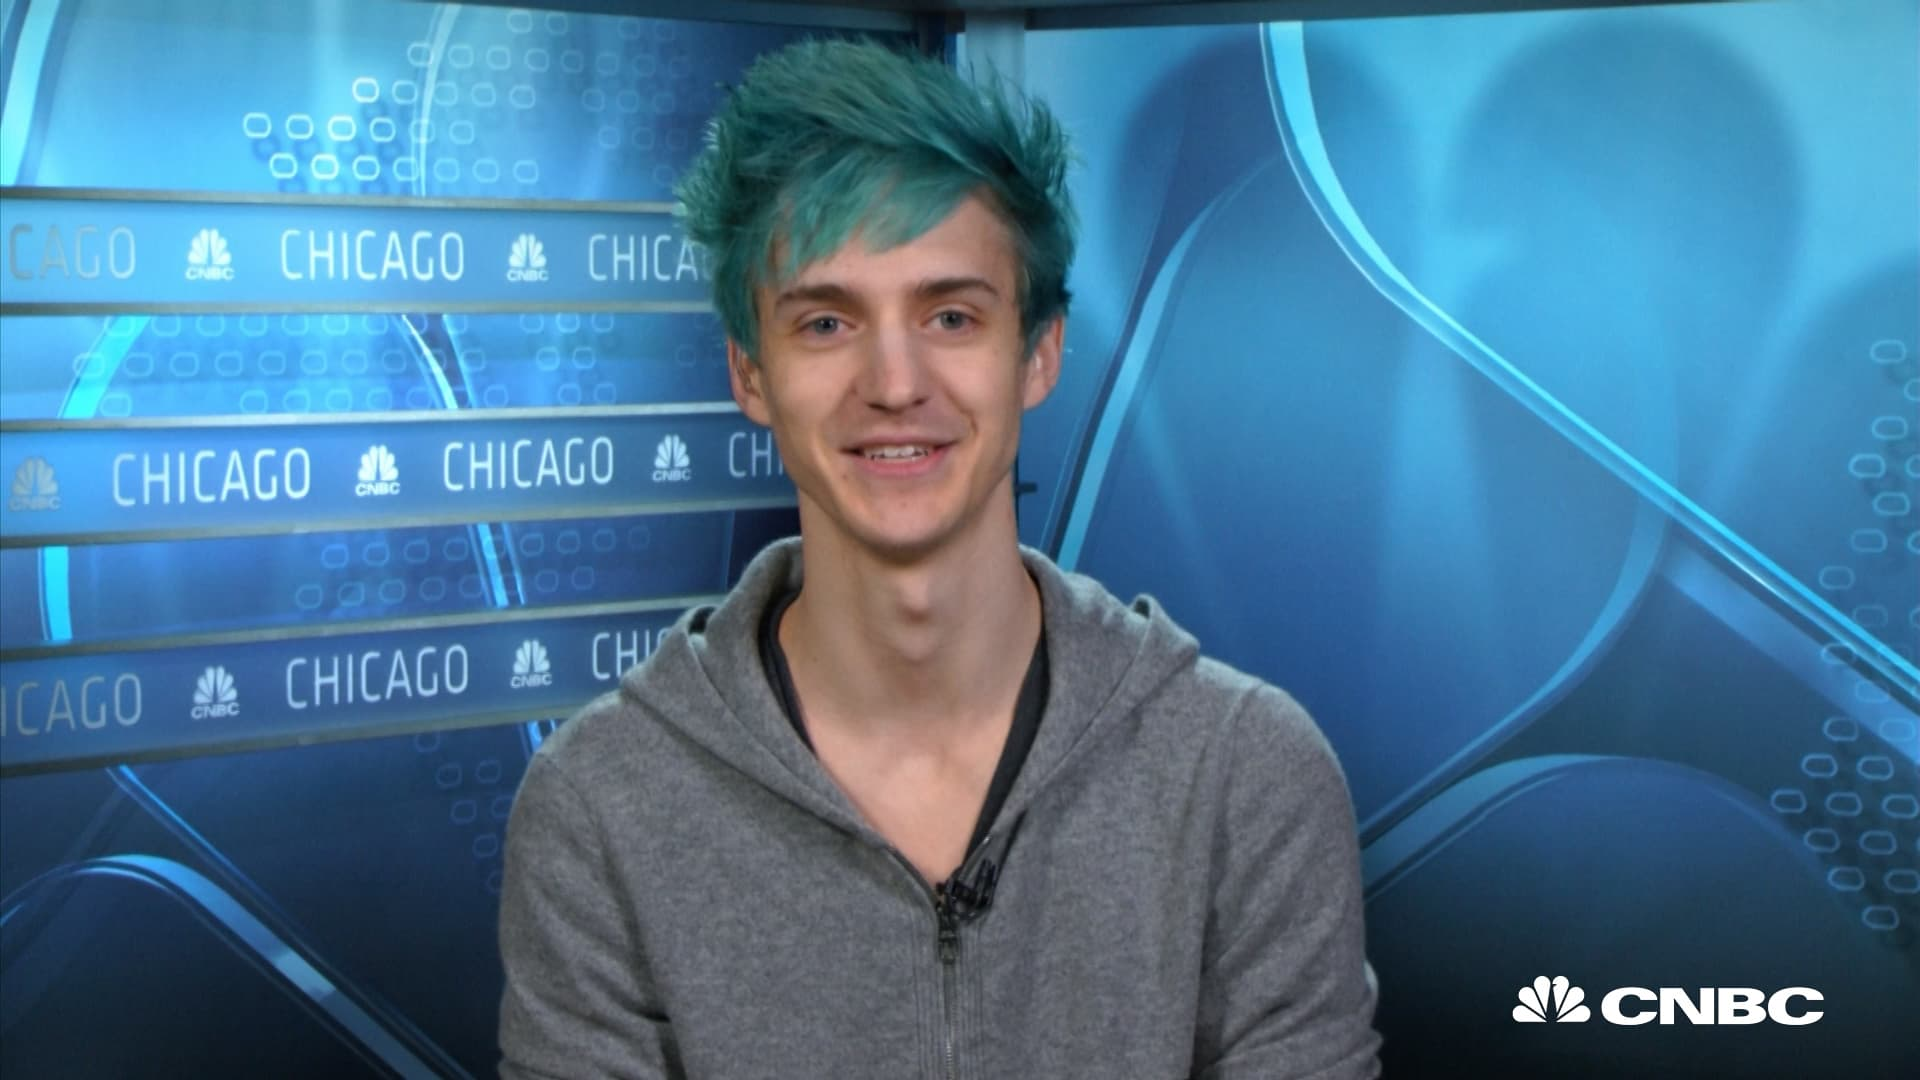 Tyler \'Ninja\' Blevins: From working at Noodles & Co. to Twitch gamer